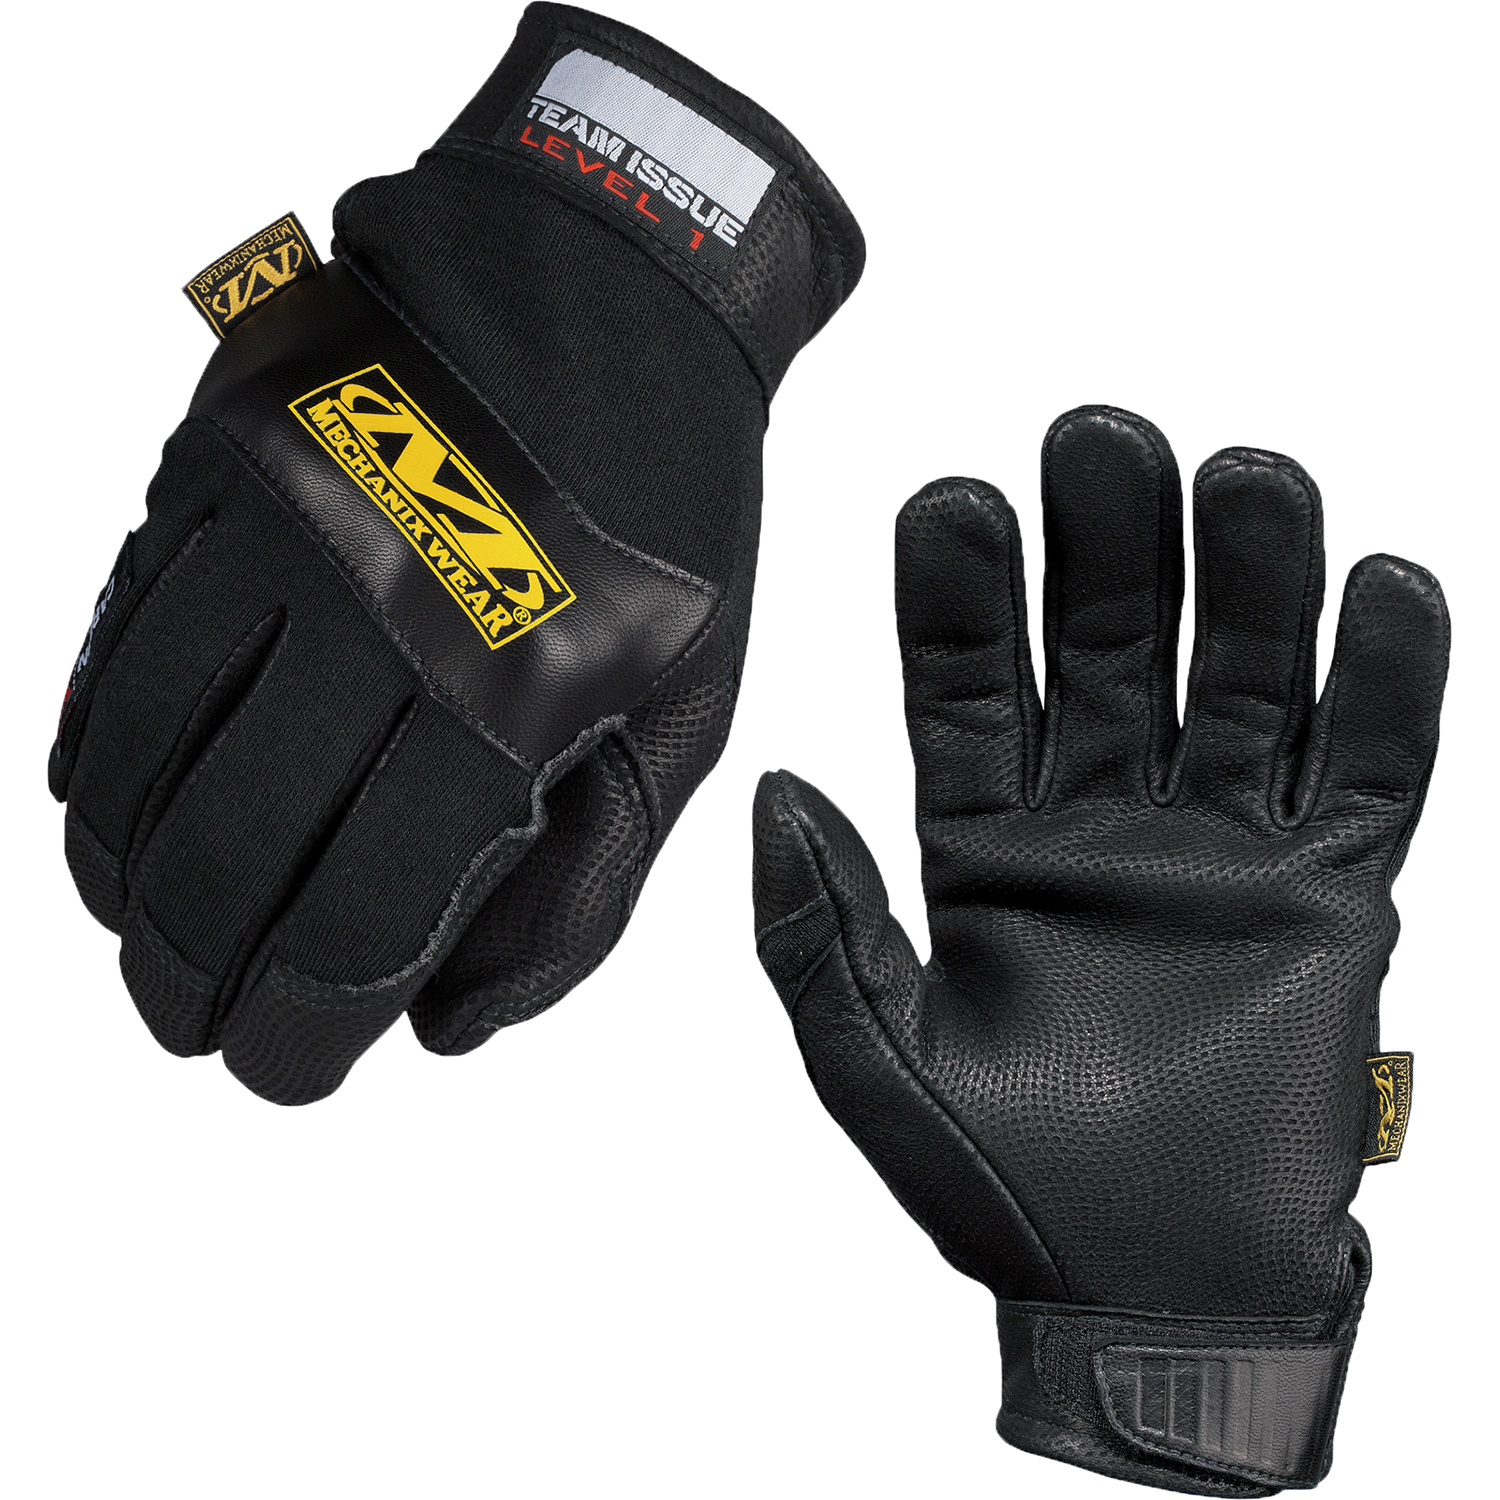 Mechanix Wear Team Issue CarbonX Level 1 Fire Retardant Gloves - Small